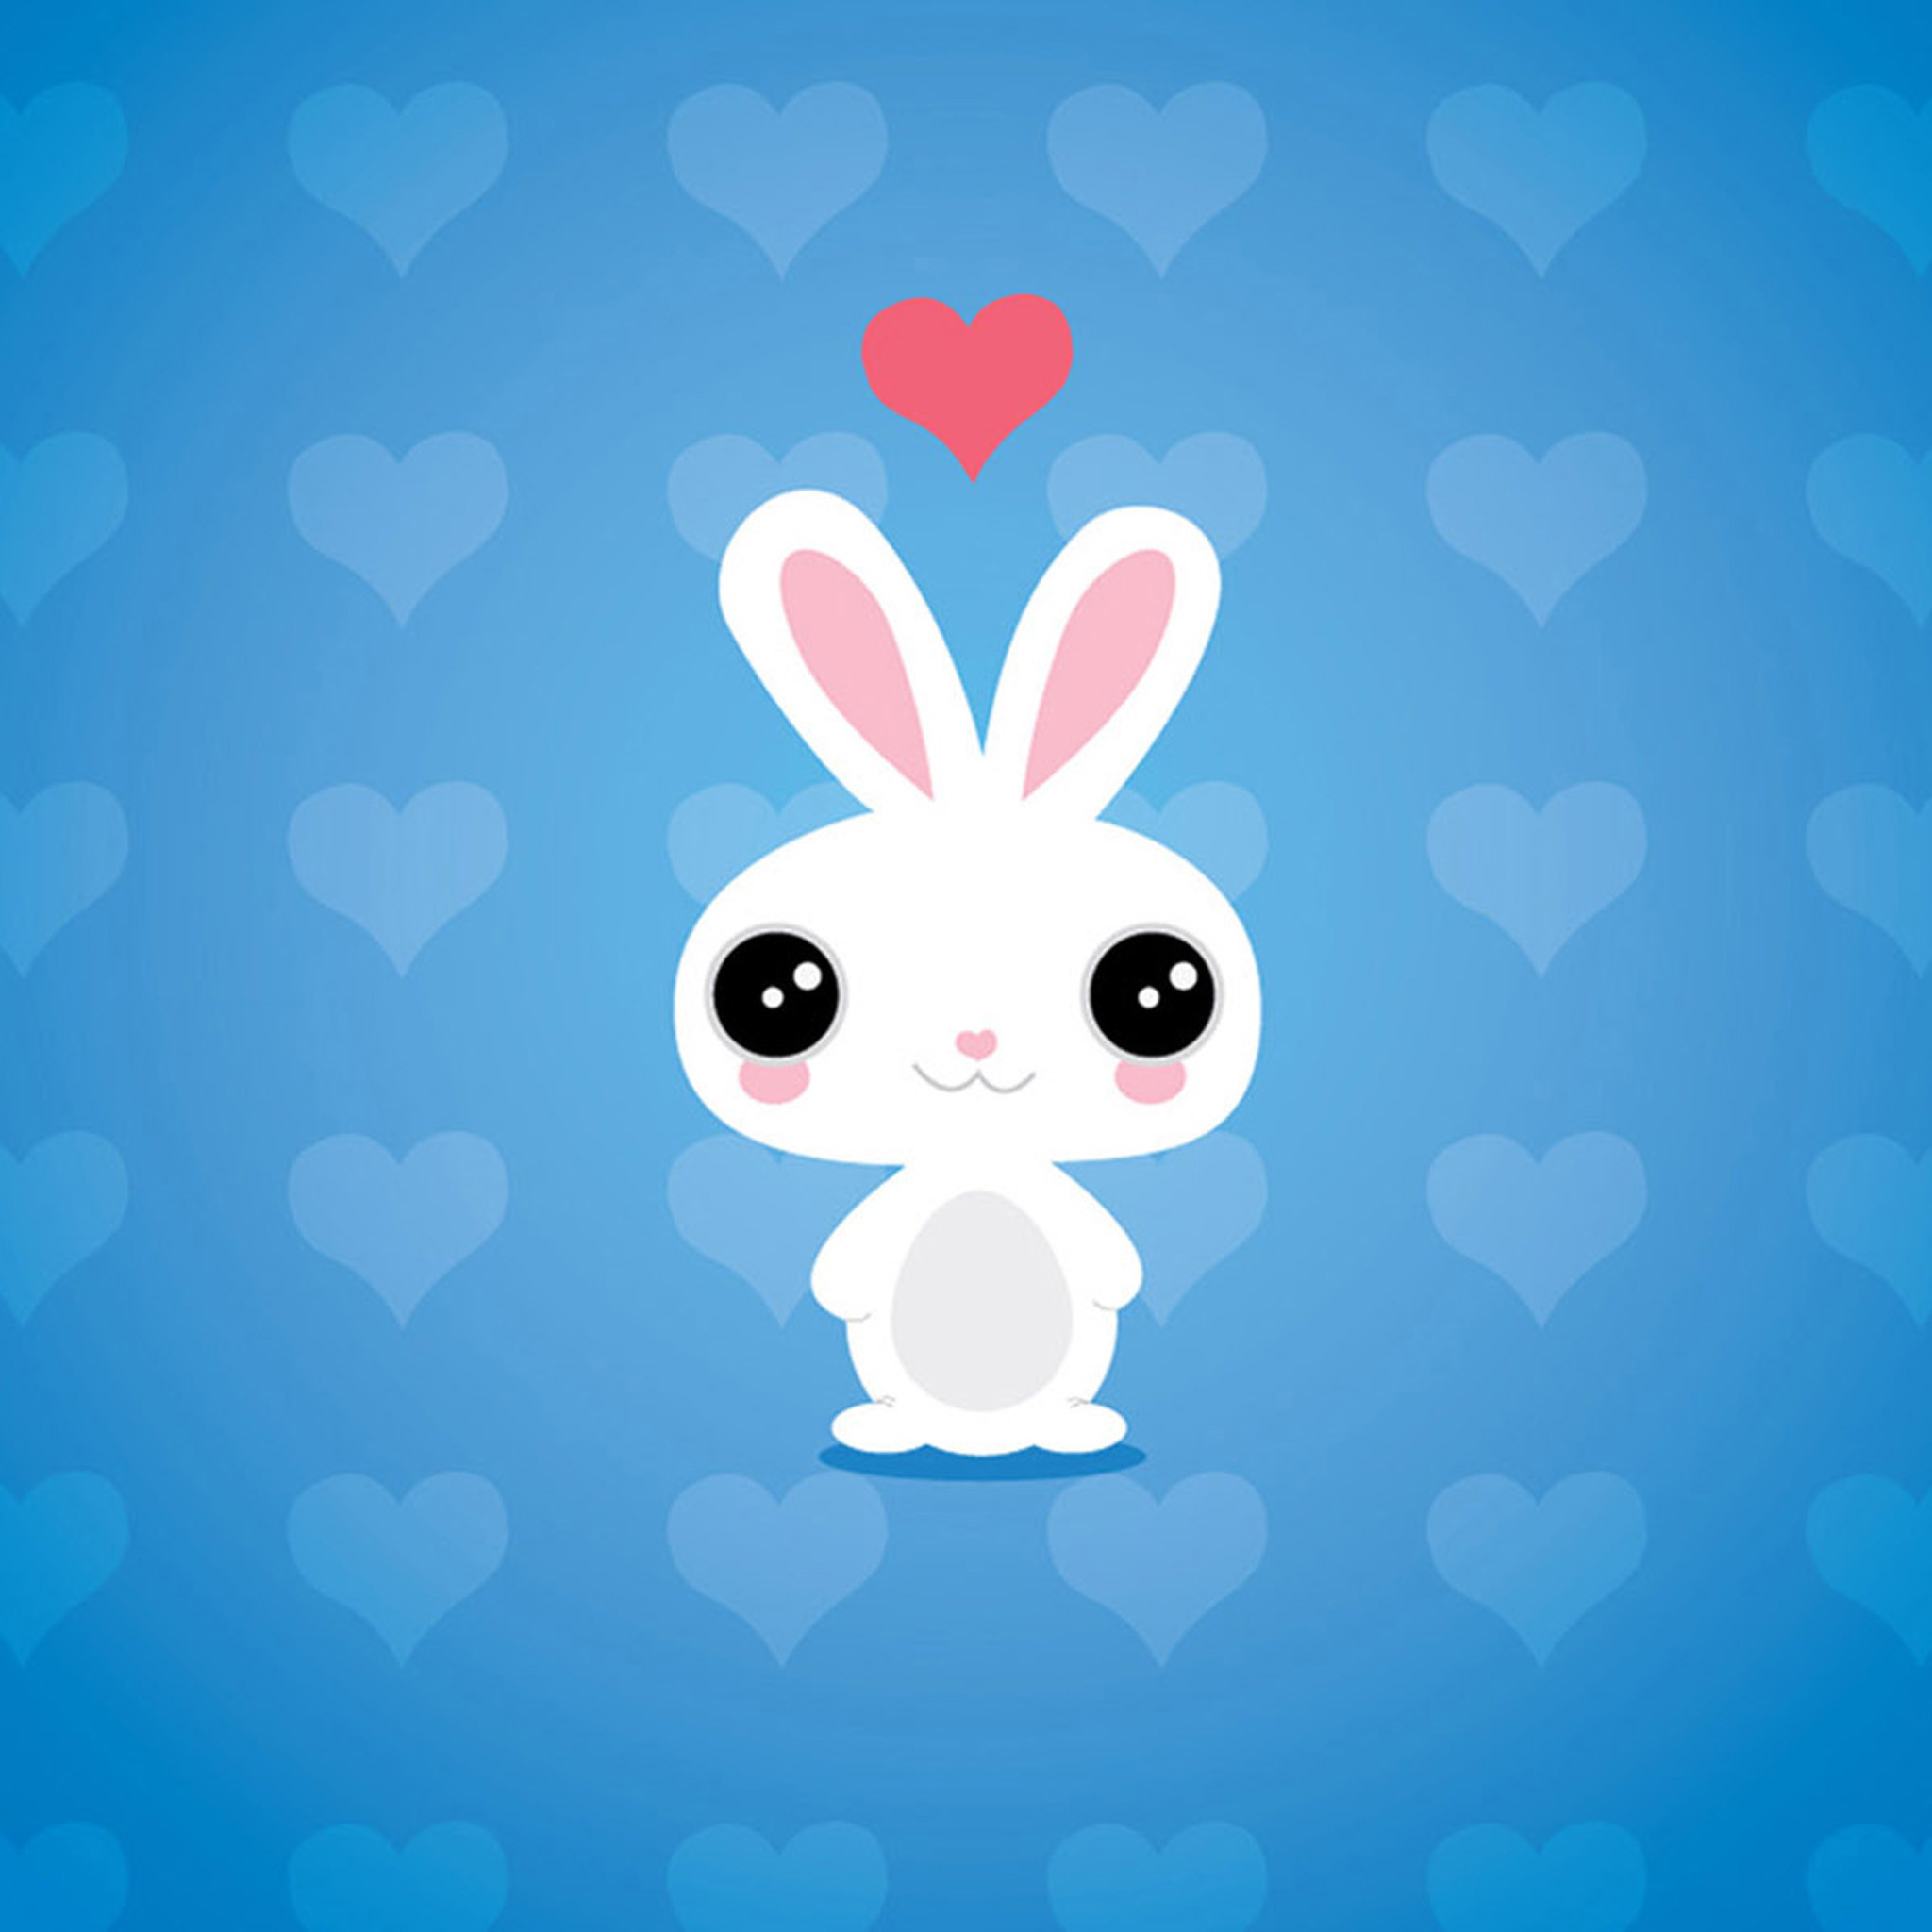 Cute Cartoon Rabbit IPad Air 2 Wallpapers